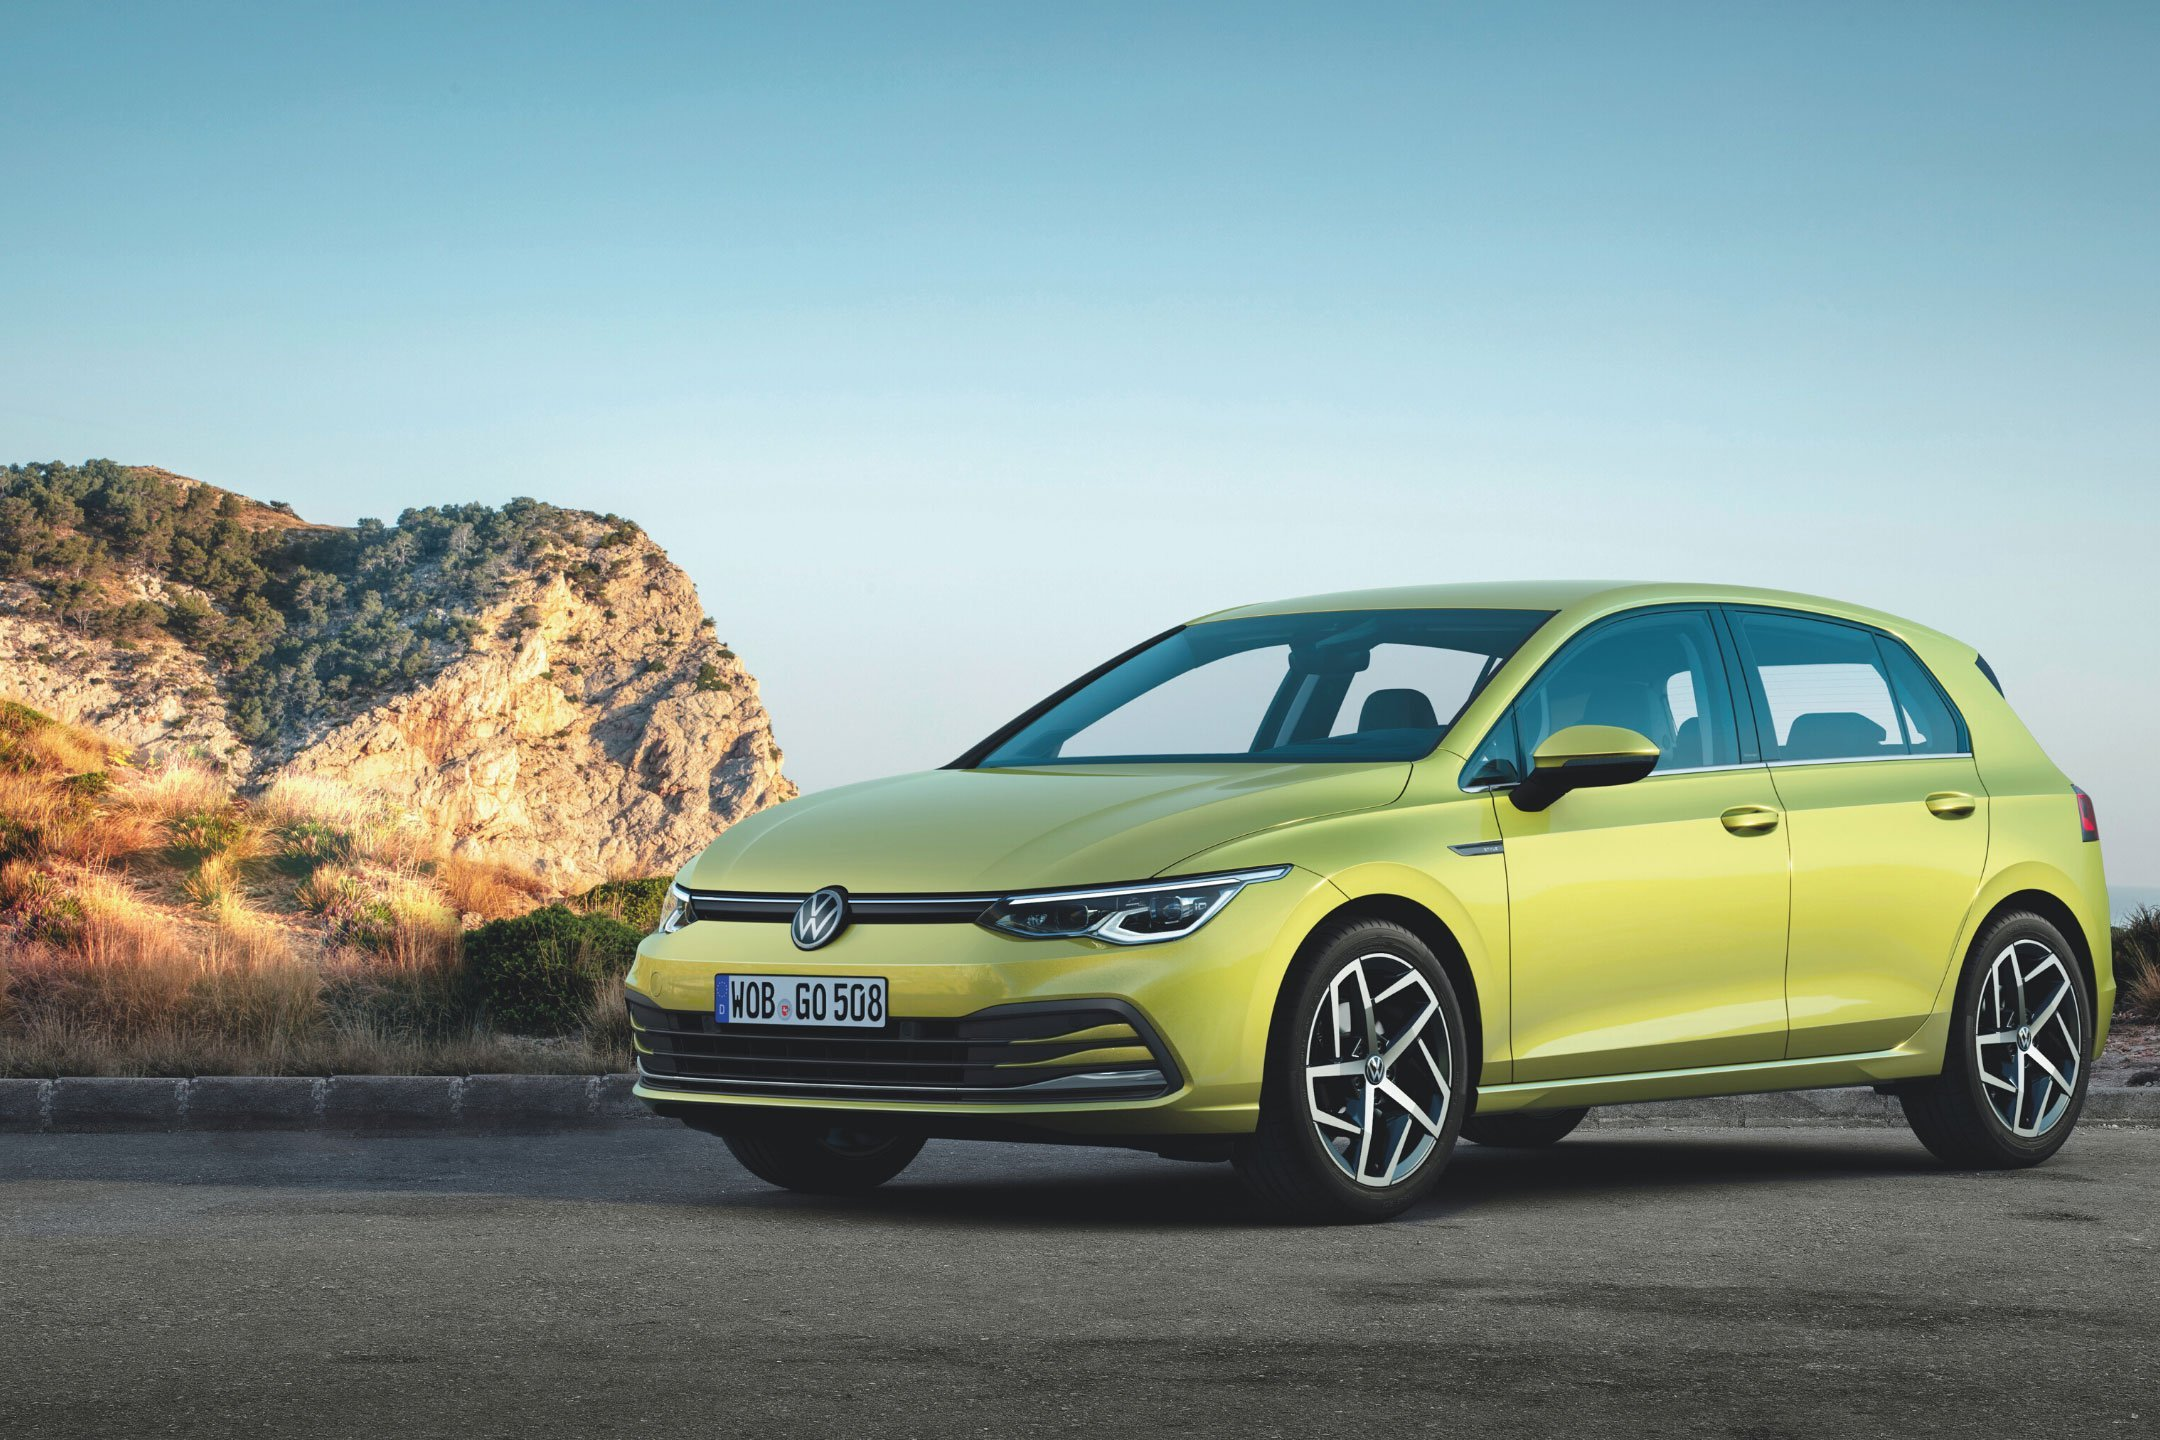 Lime coloured Volkswagen Golf Mk8 parked with the ocean behind it